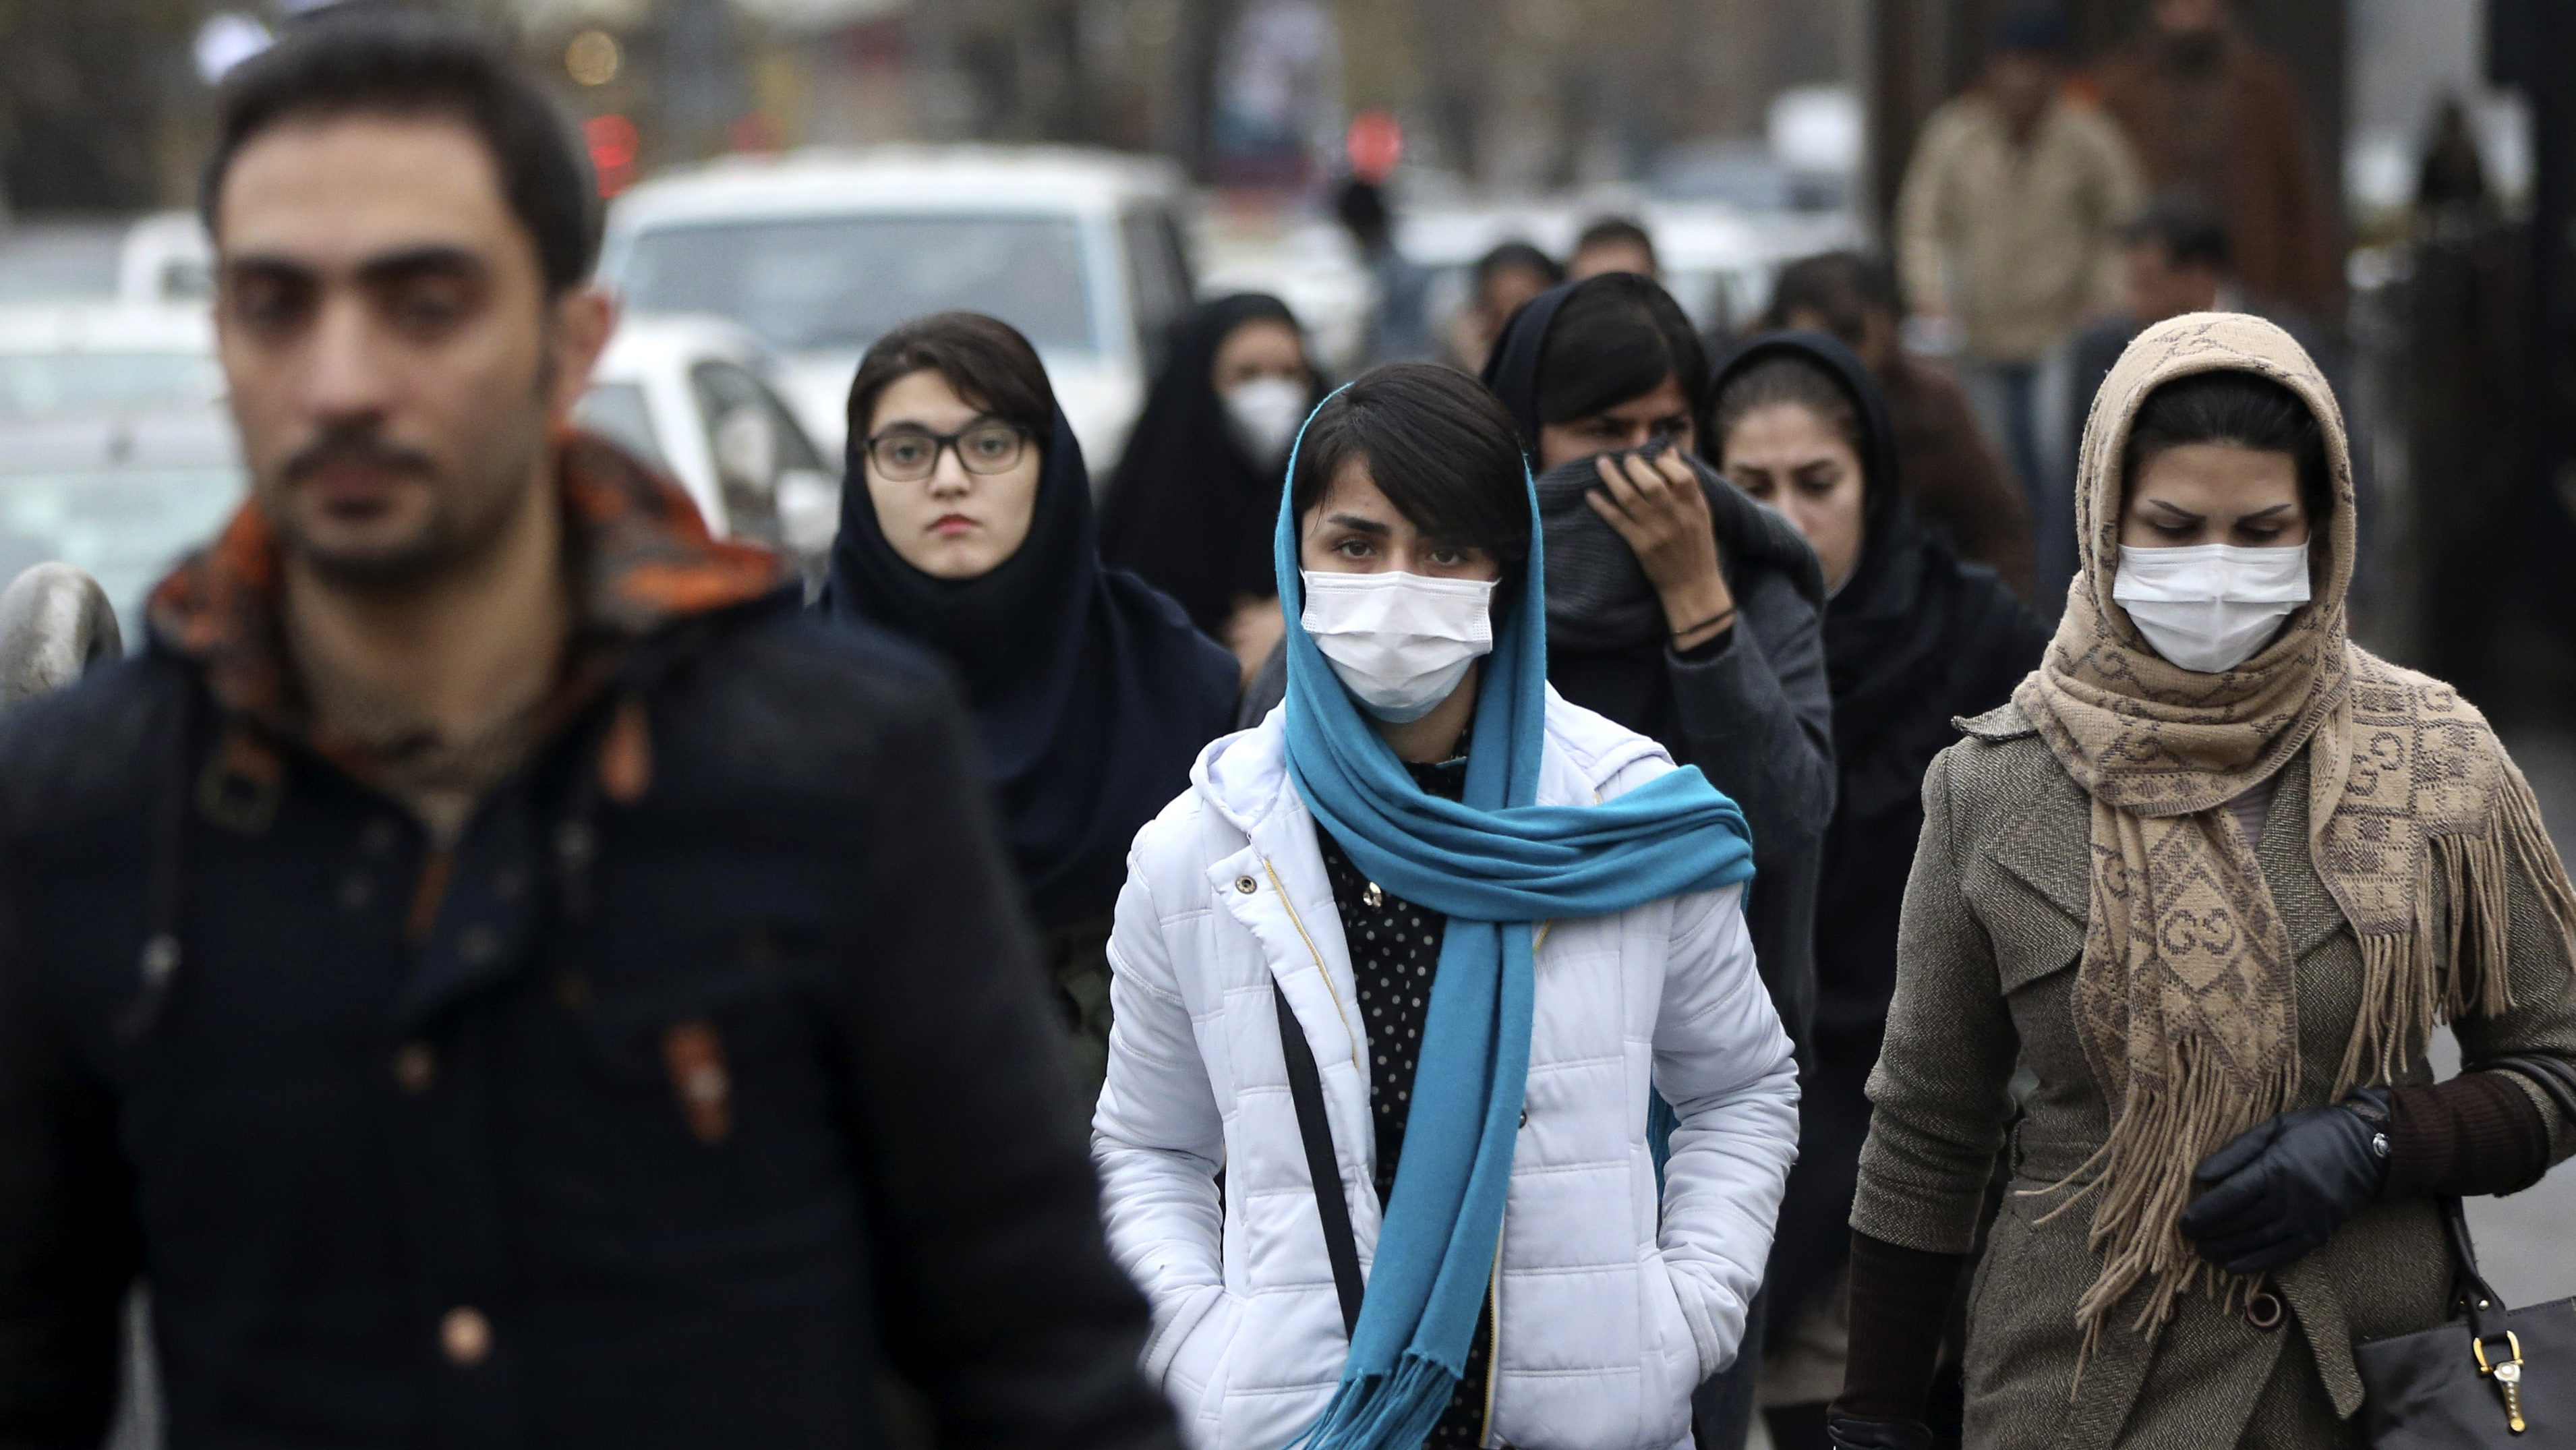 People wearing face masks to block pollution in Iran.